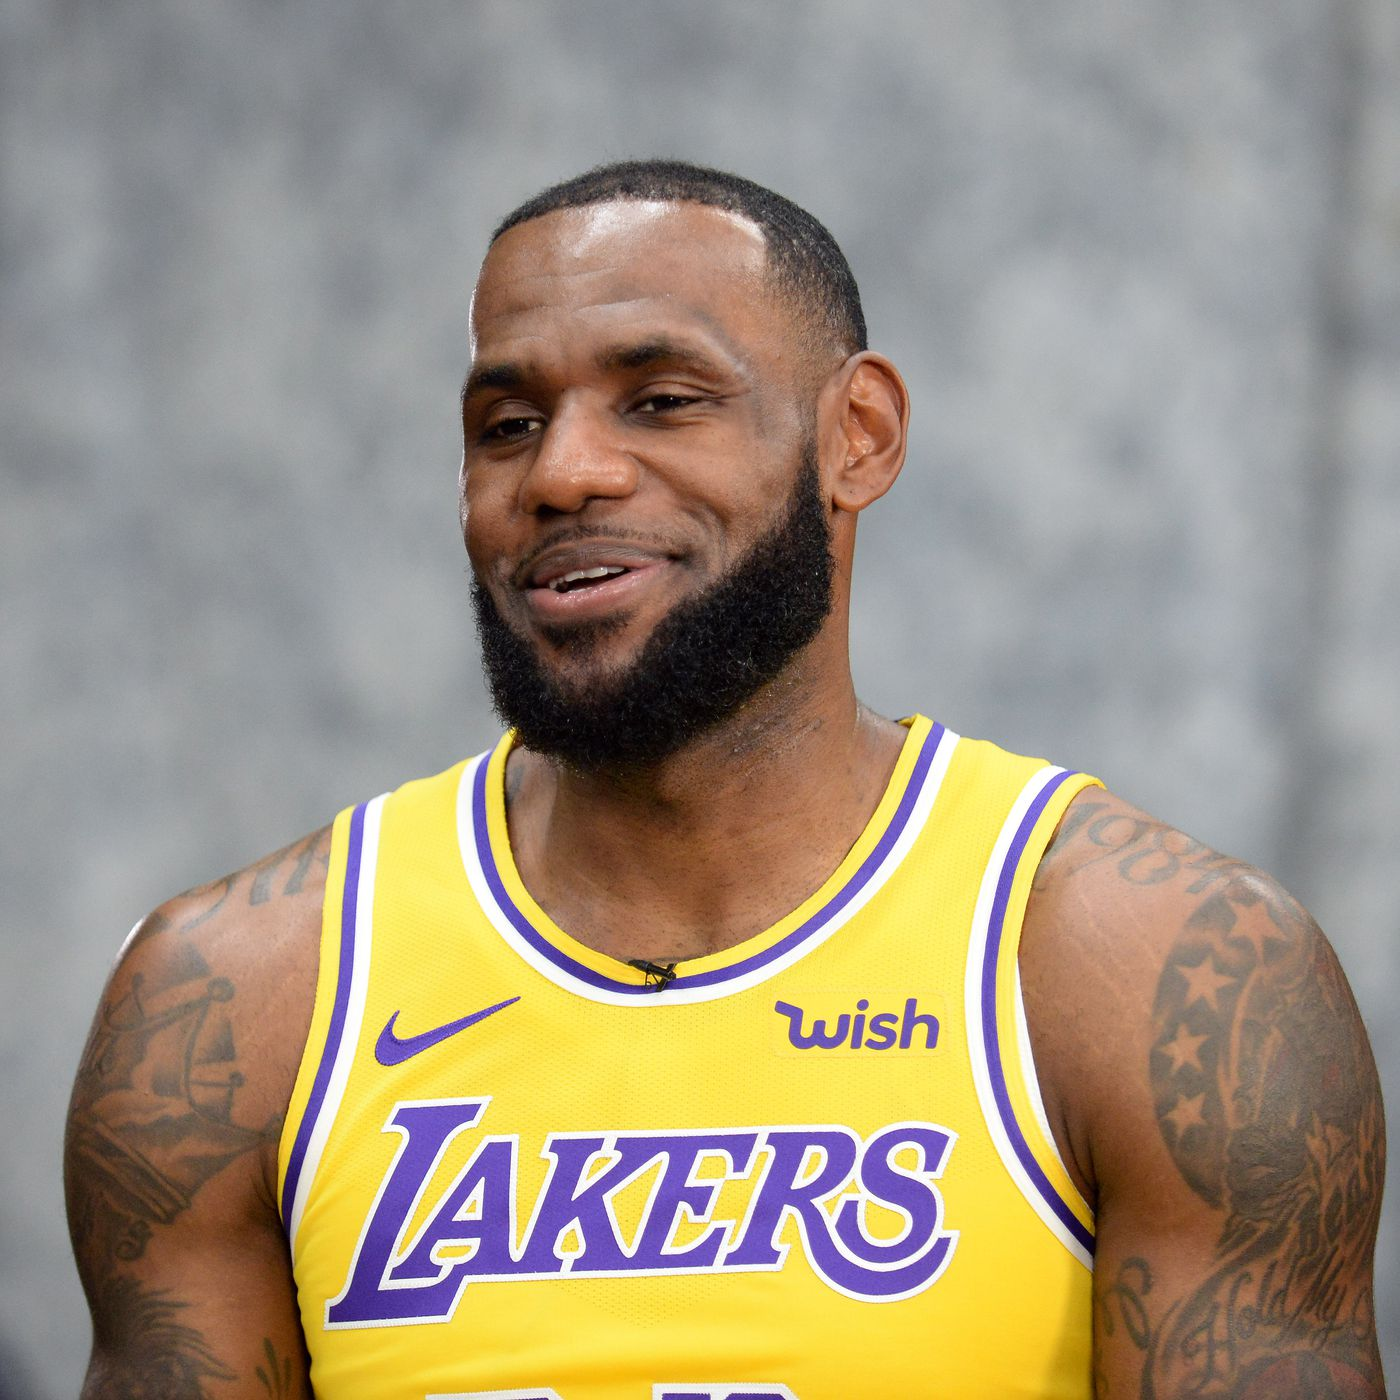 ad64dba732a See the new Lakers jerseys LeBron James   Co. wore at media day  You can  order one